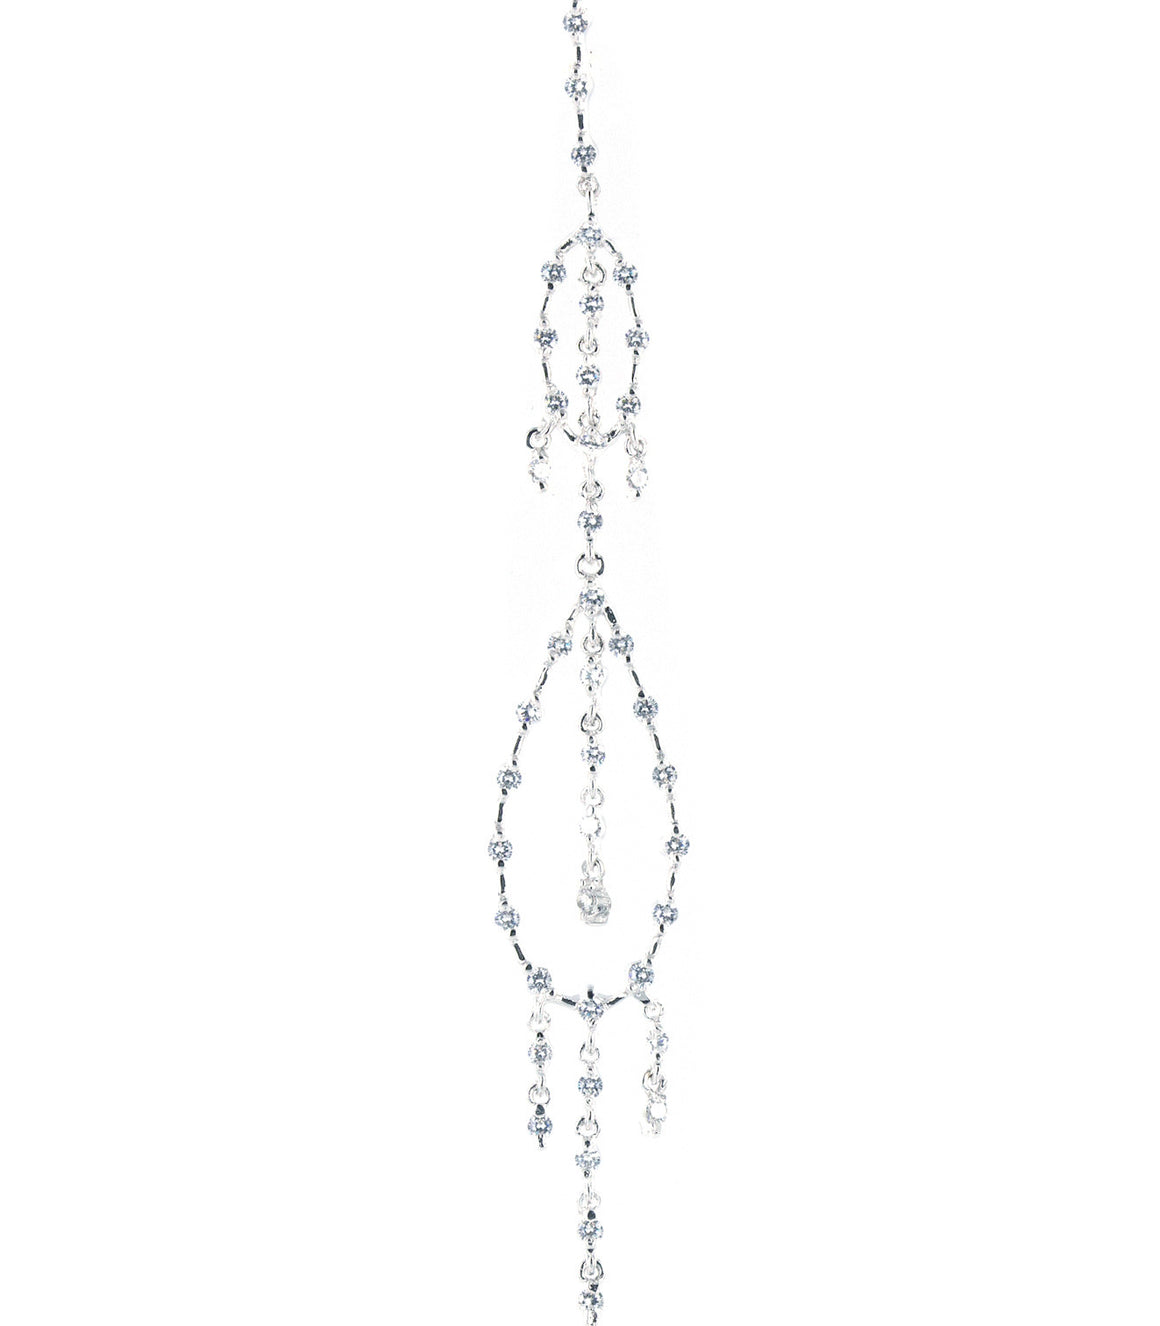 Dramatic dangle chandelier cubic zirconia Sterling Silver Earringss.